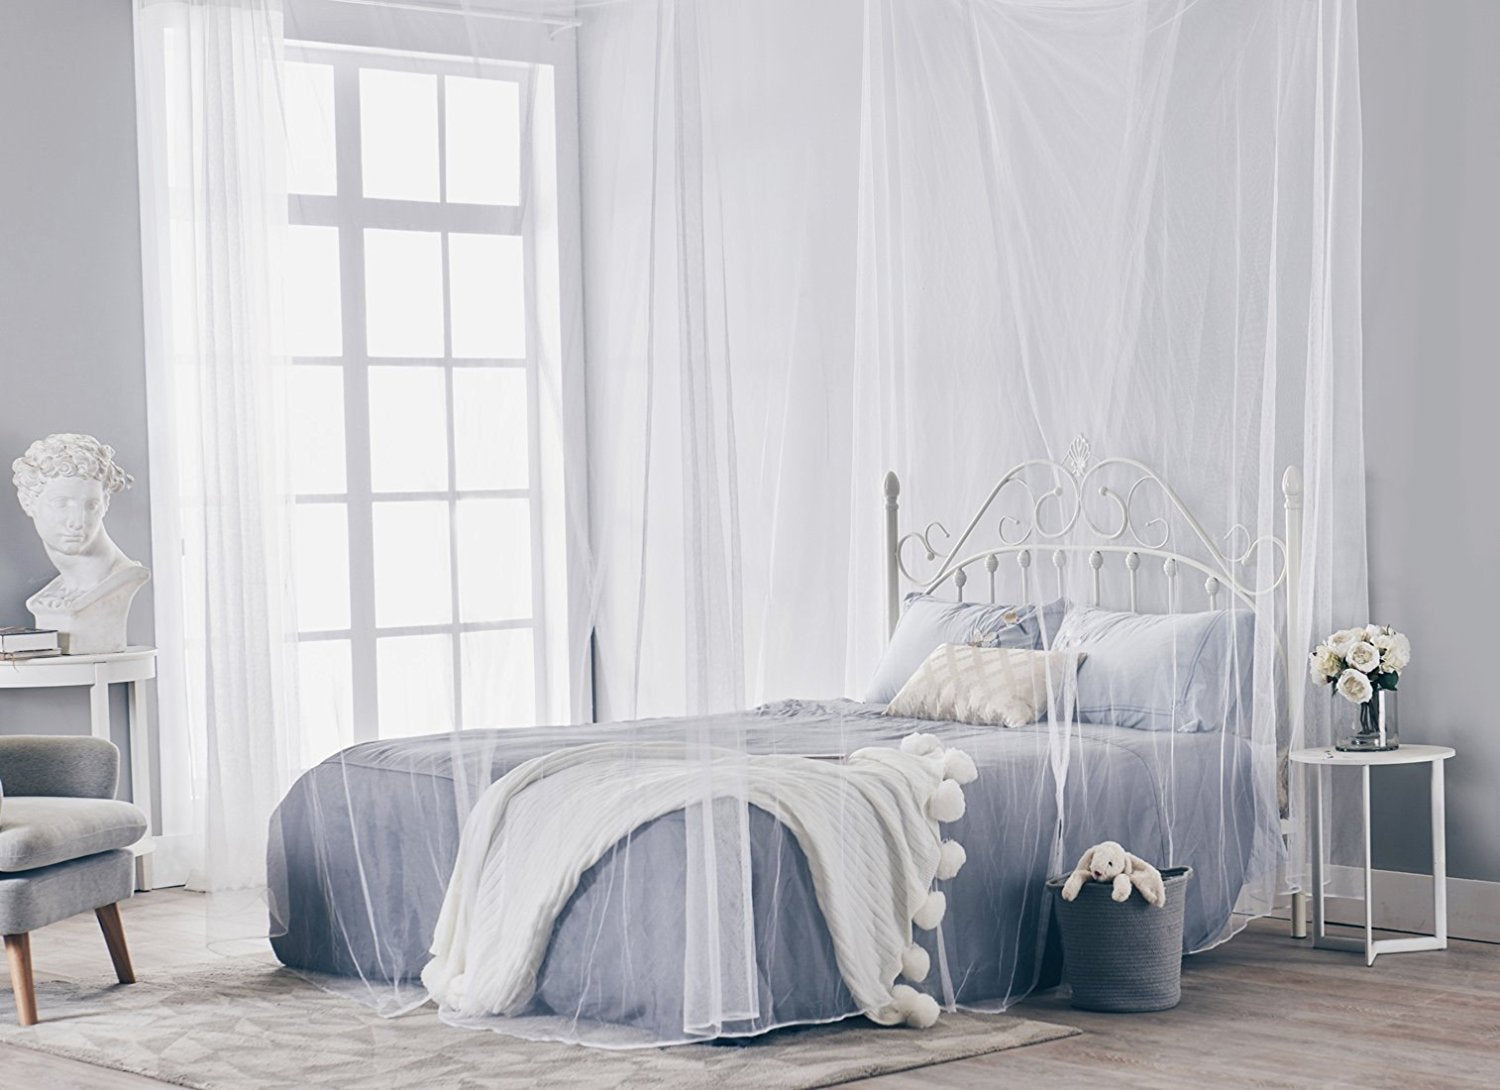 Truedays Four Corner Post Bed Princess Canopy Mosquito Net Full Queen King Size